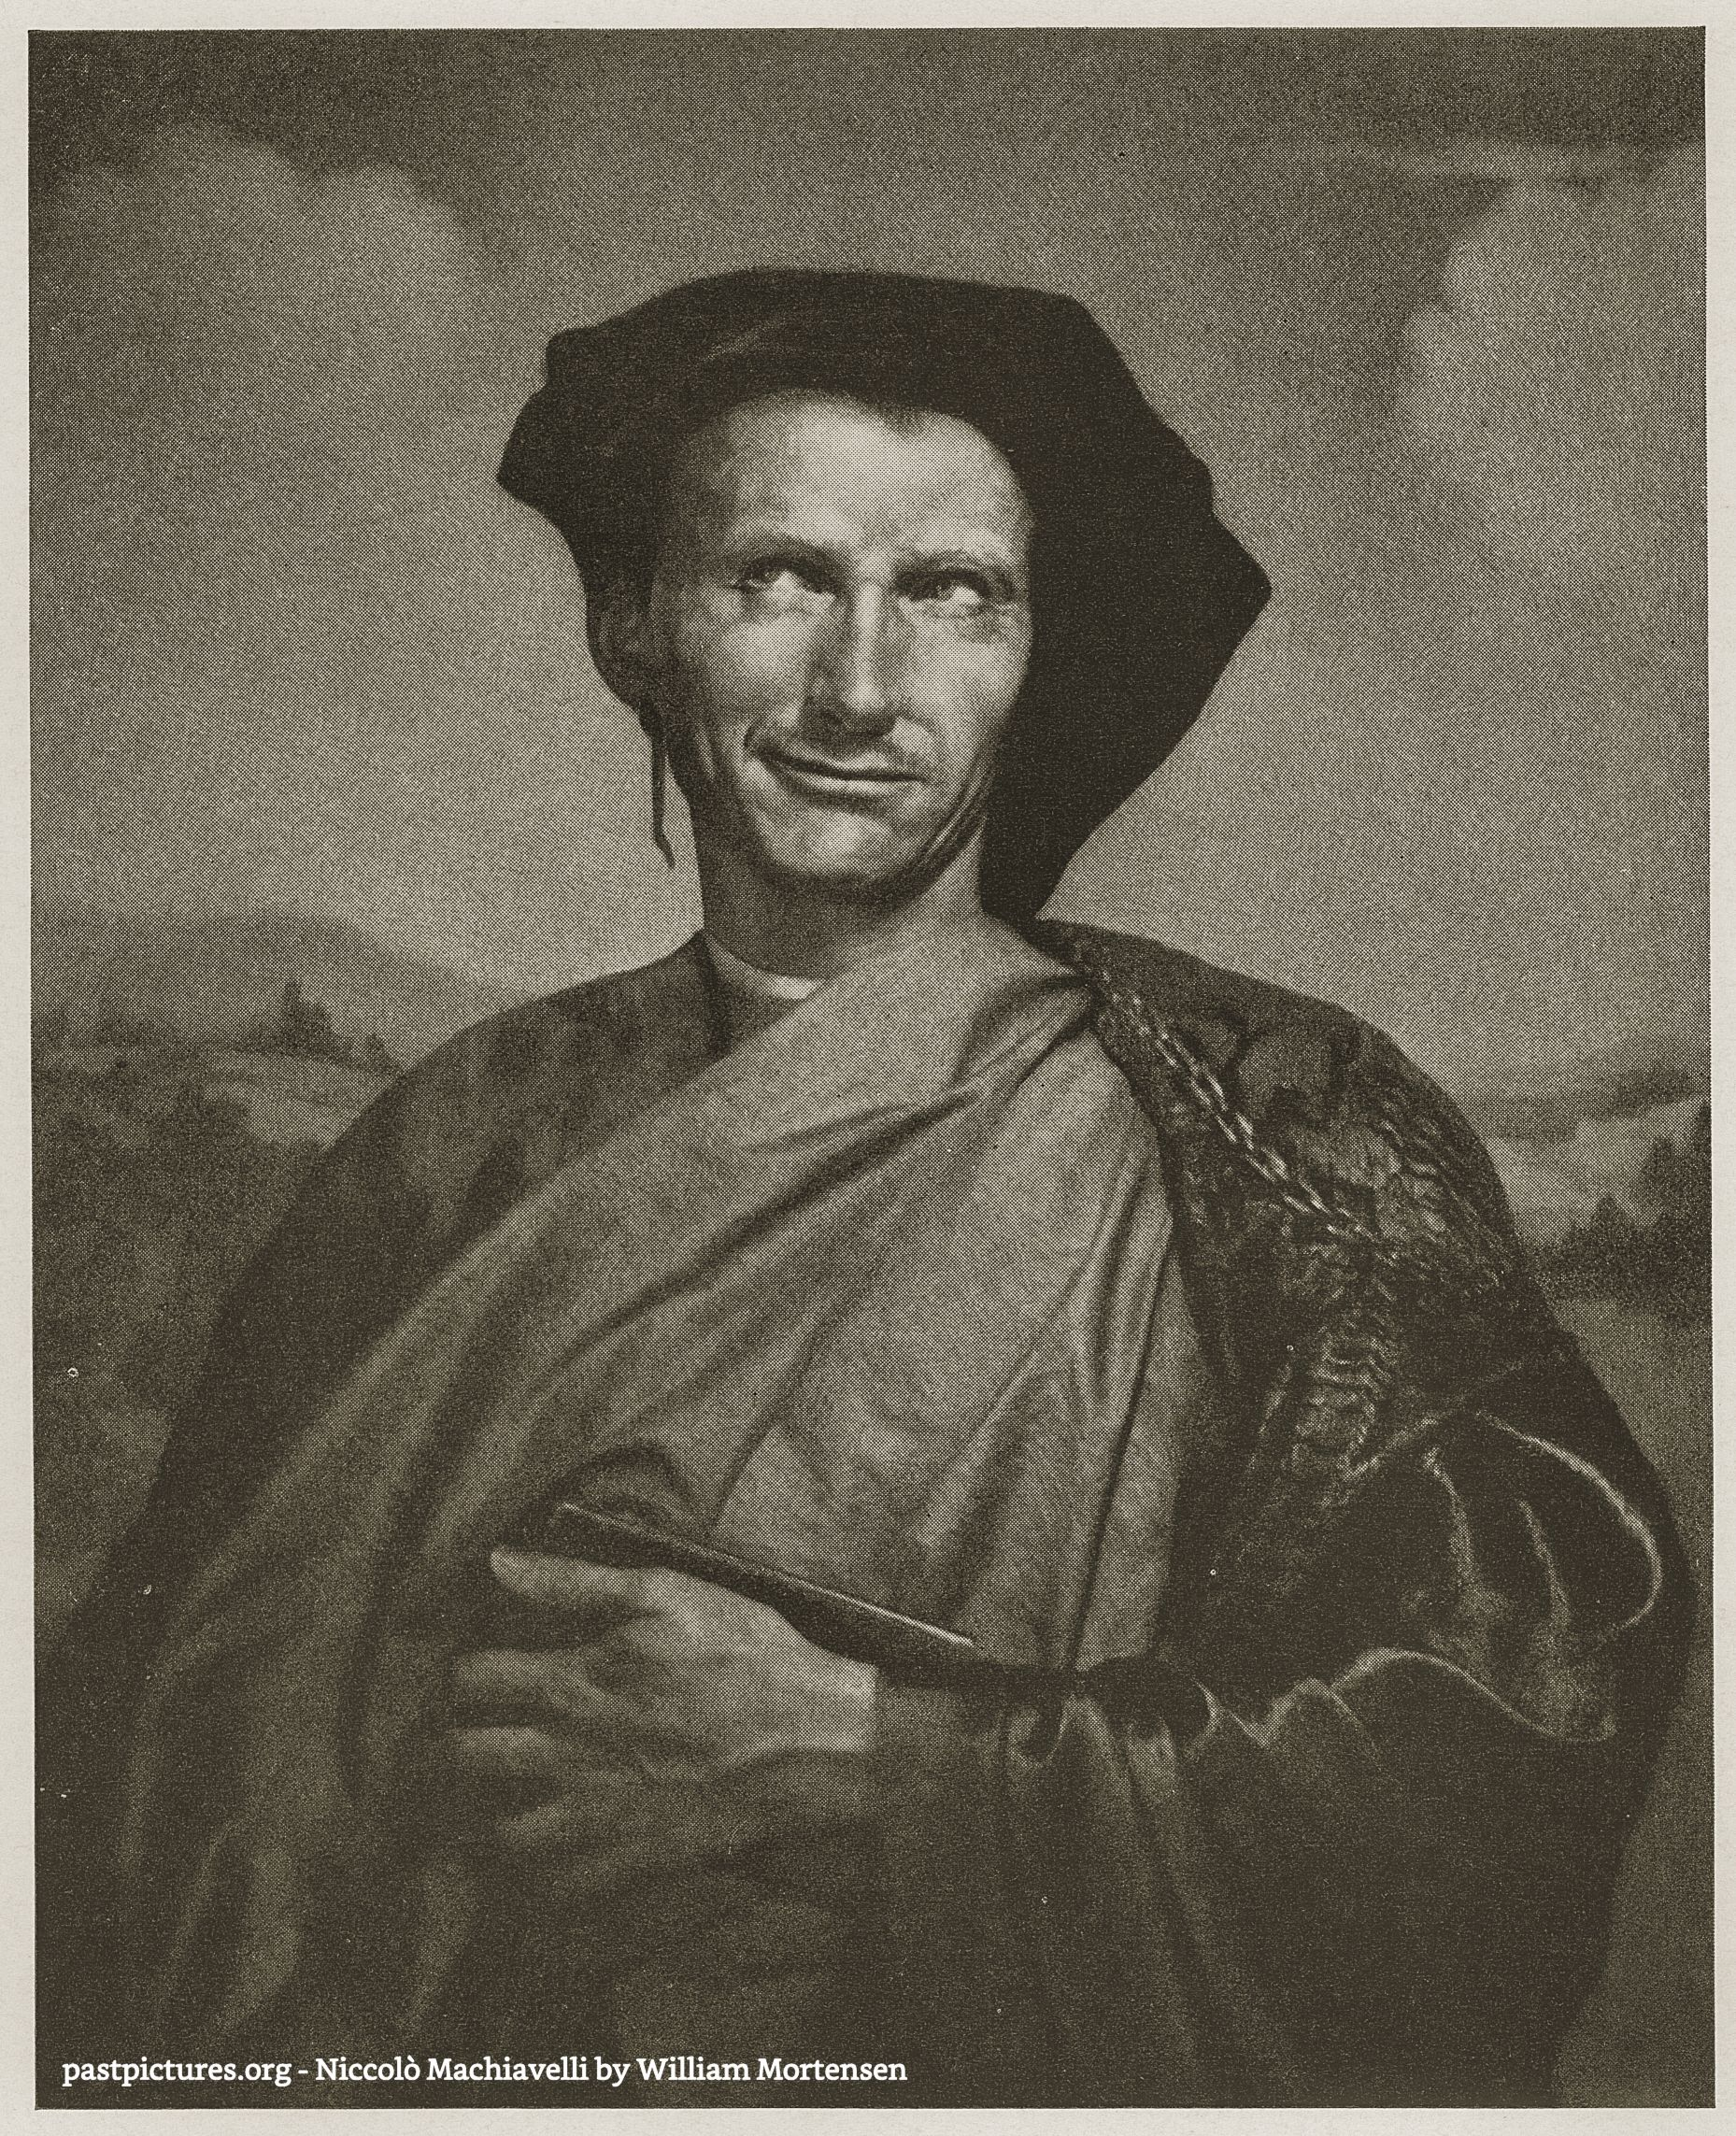 Niccolò Machiavelli by William Mortensen about 1930